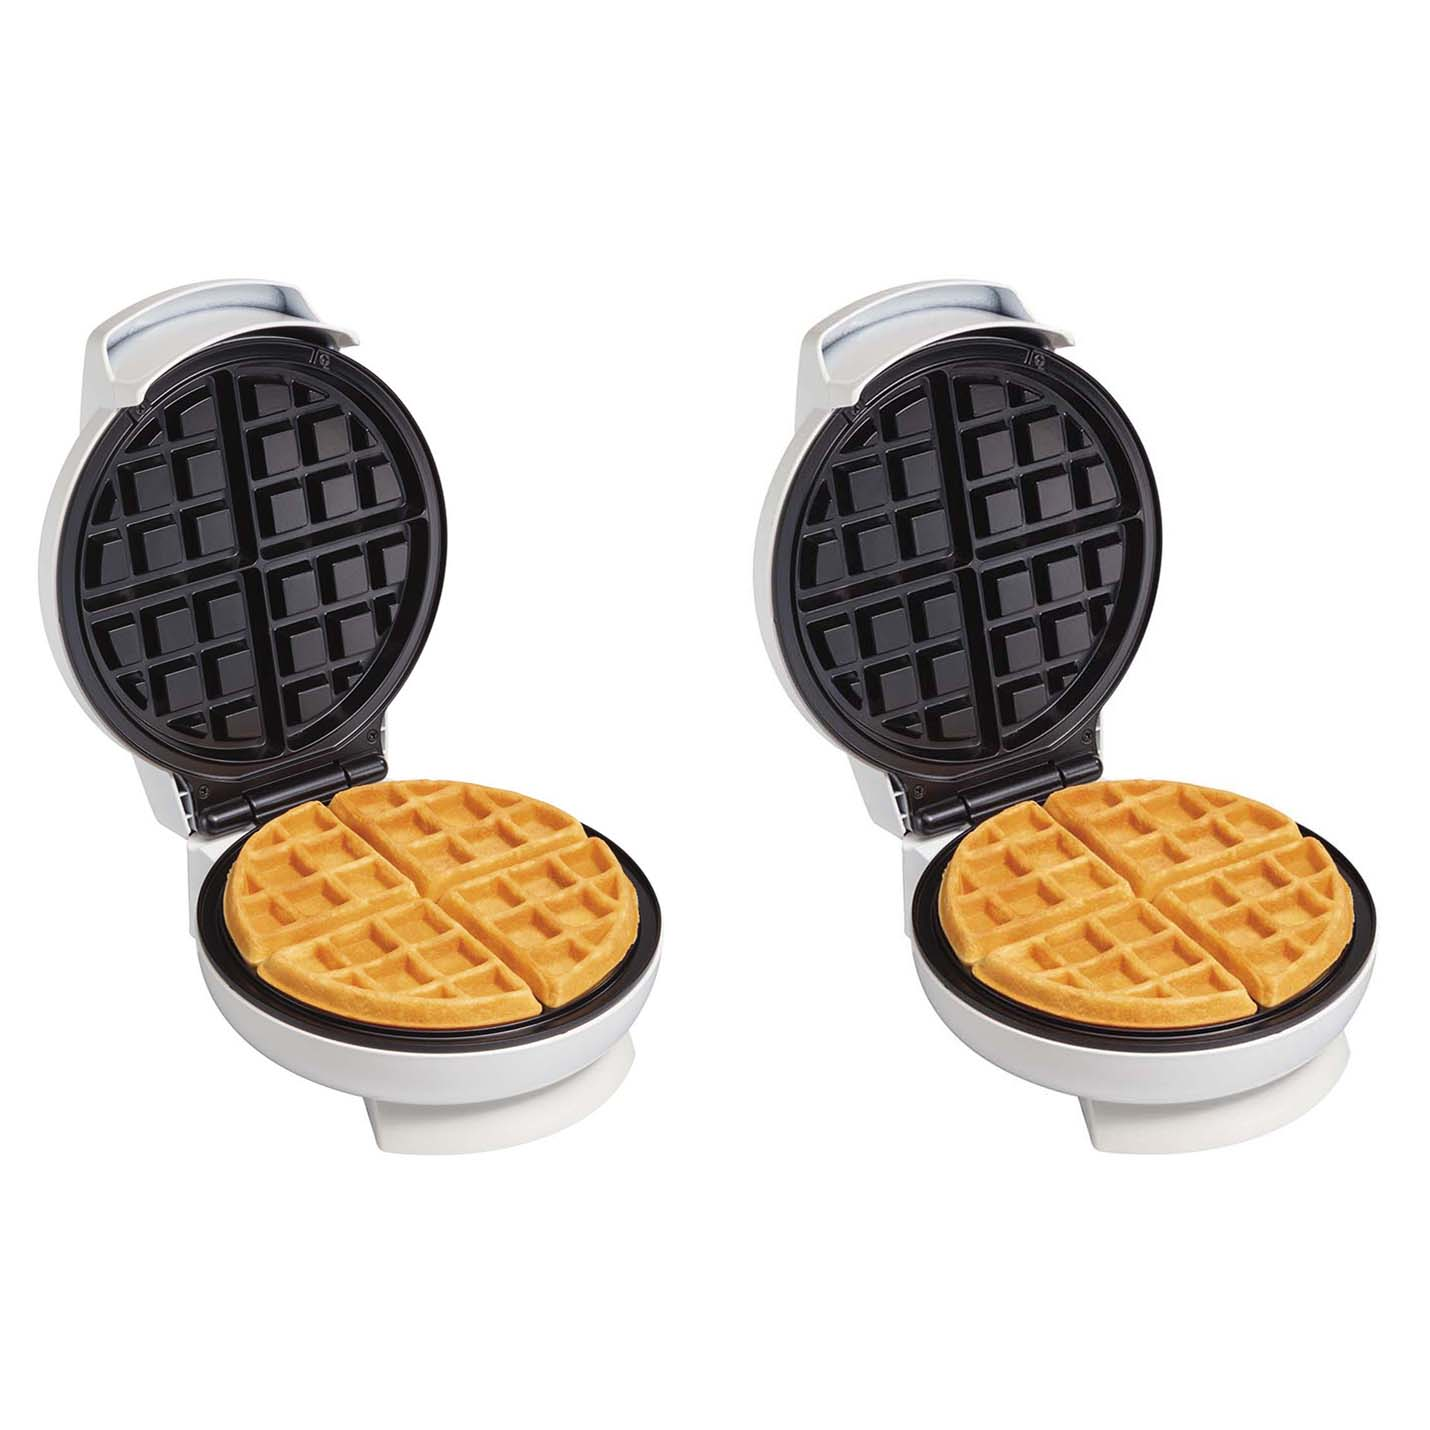 2-Pack Proctor Silex Counter Non-Stick Belgian-Style Waffle Makers 2 x 26070